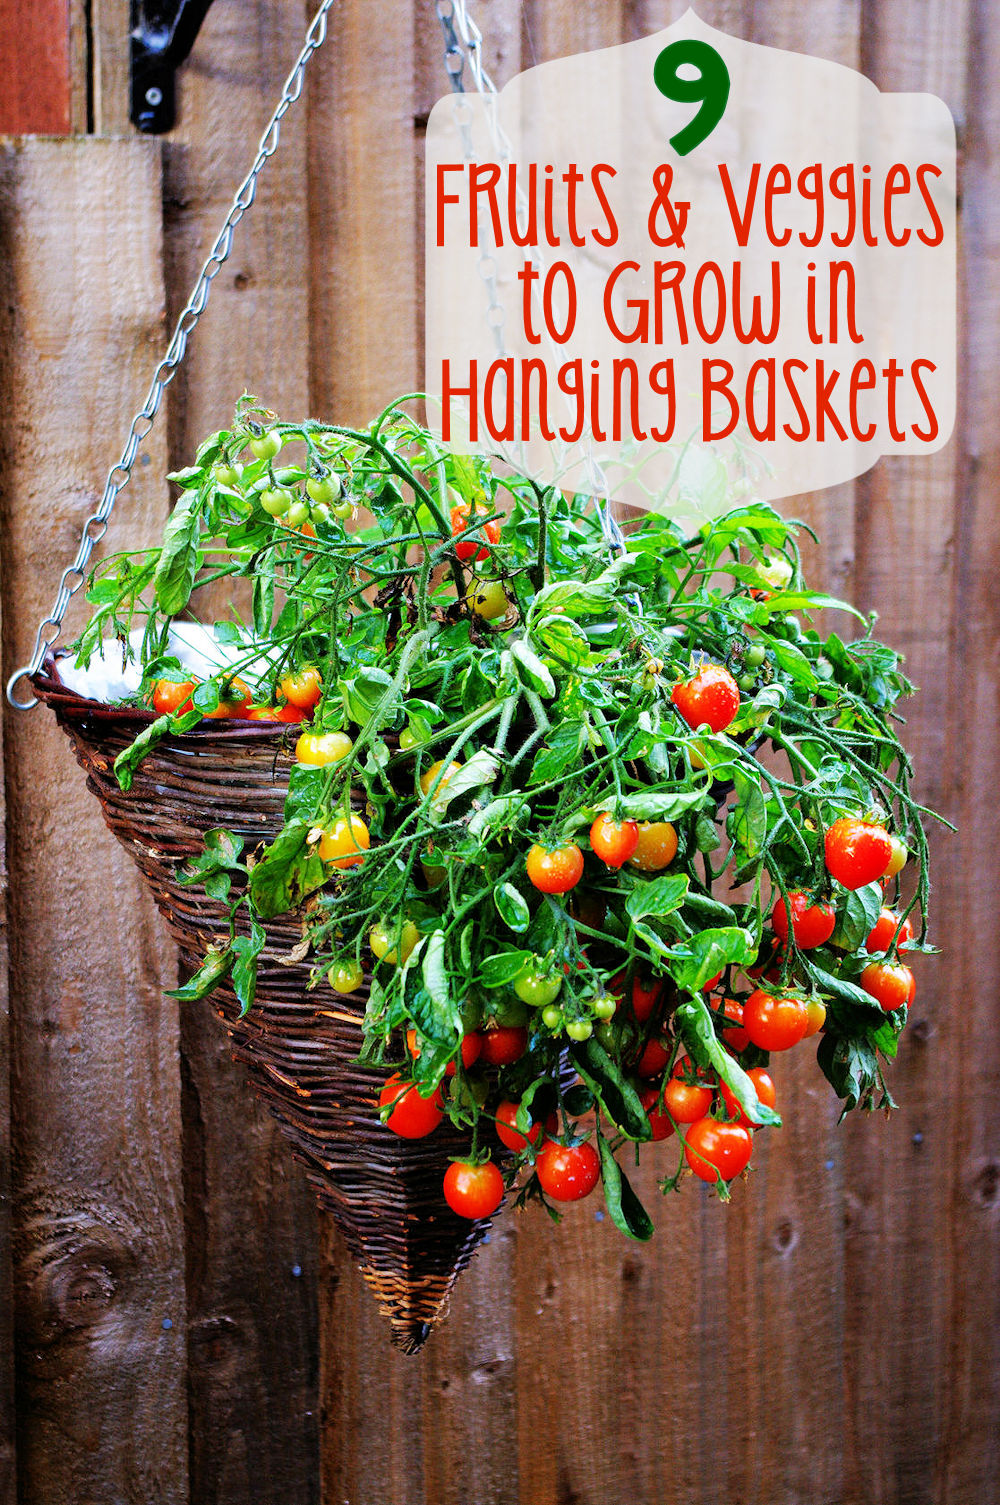 9 Fruits and Veggies to Grow in Hanging Baskets